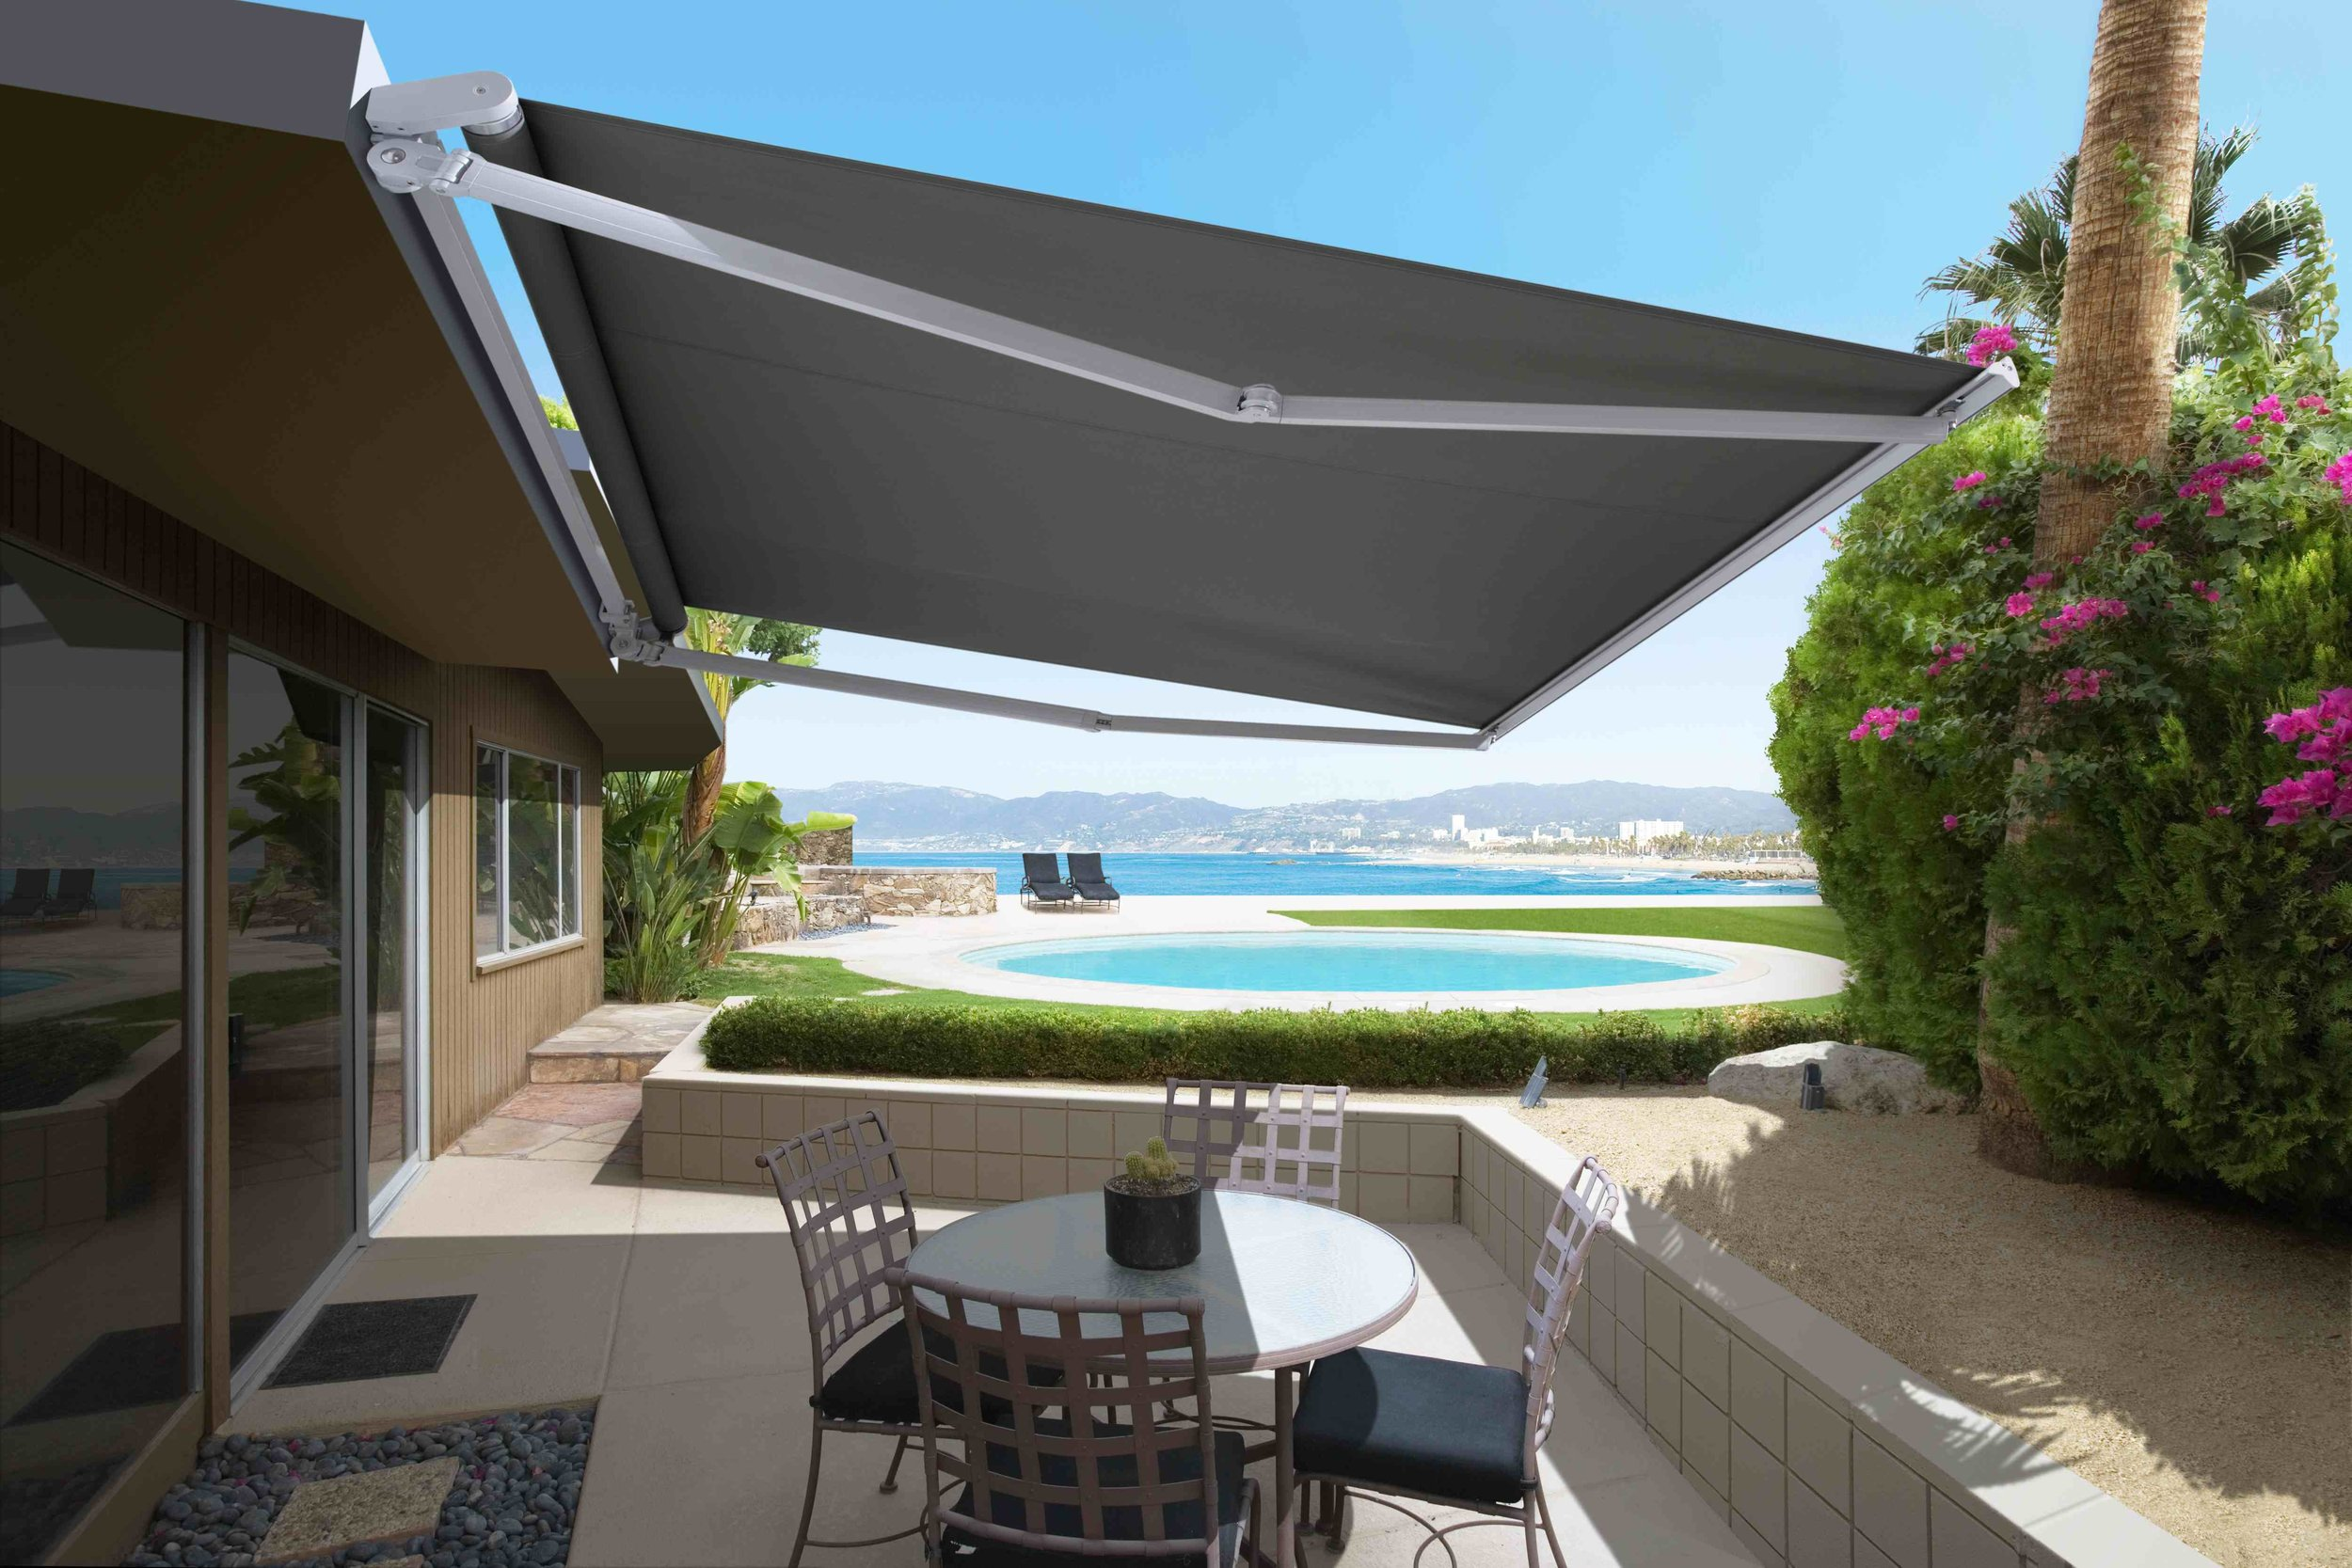 NZWS Luxaflex® Folding Arm Awnings (LXFA-216 Print)_LR.jpg